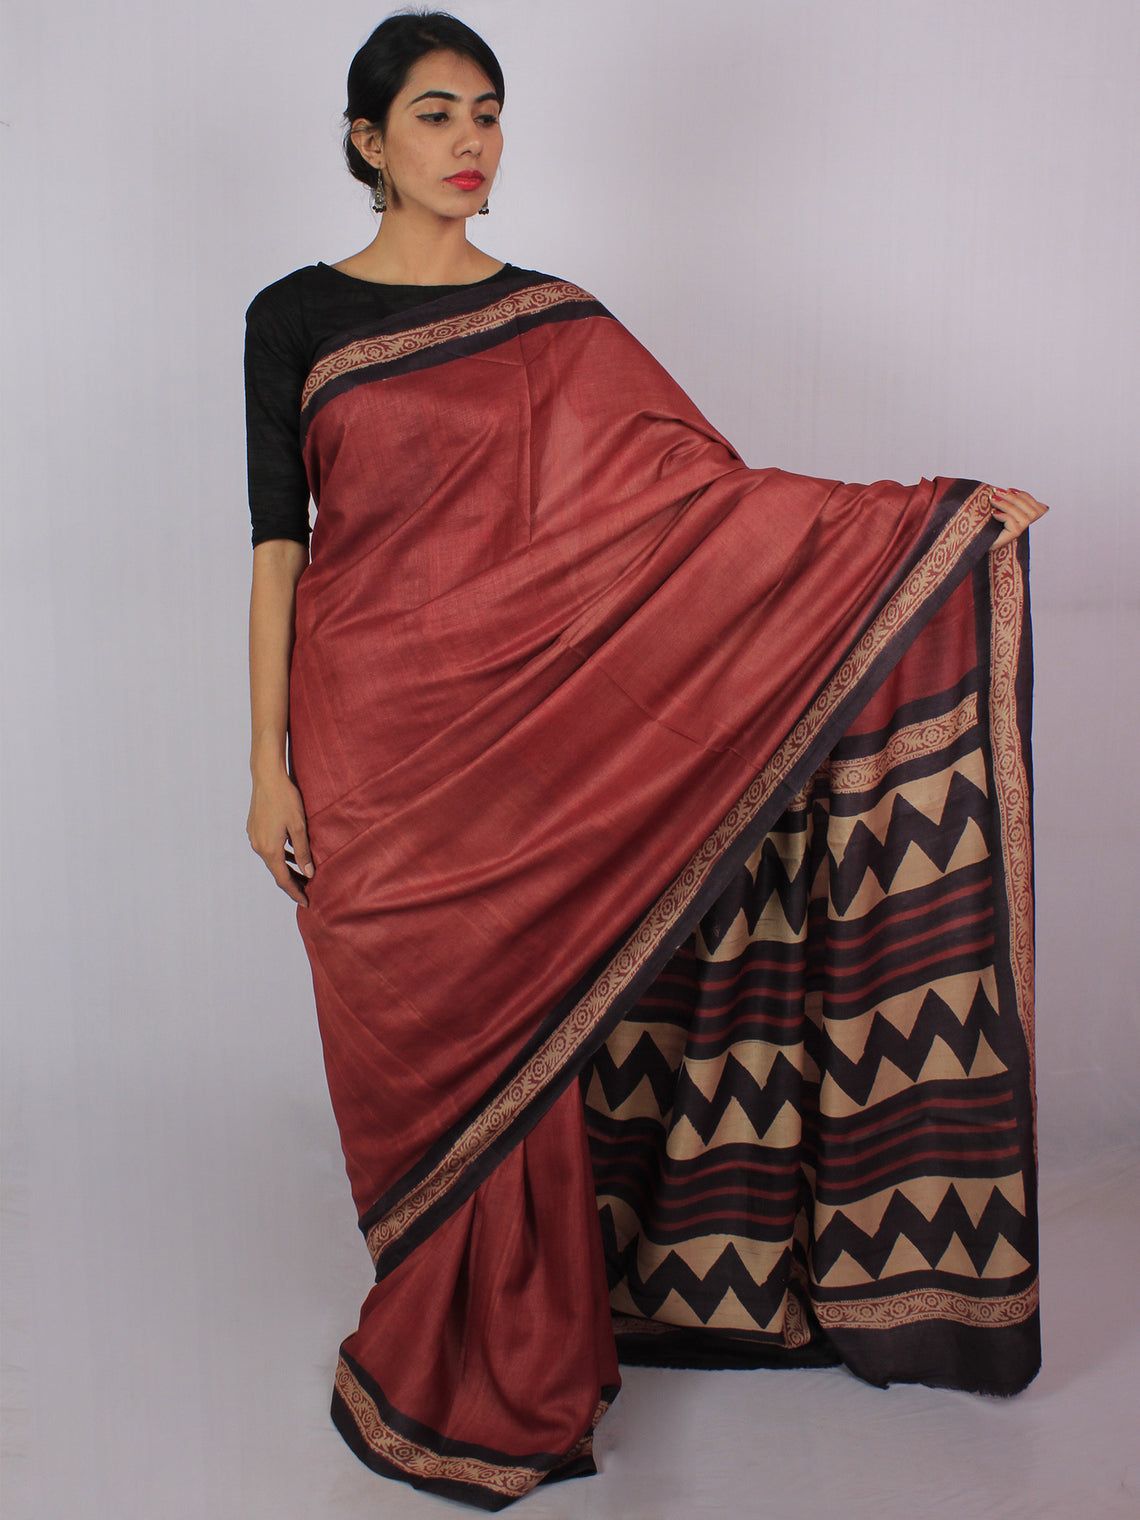 Tussar Handloom Silk Hand Block Printed Saree in Dark Vermilion Red Purple Beige - S031701205